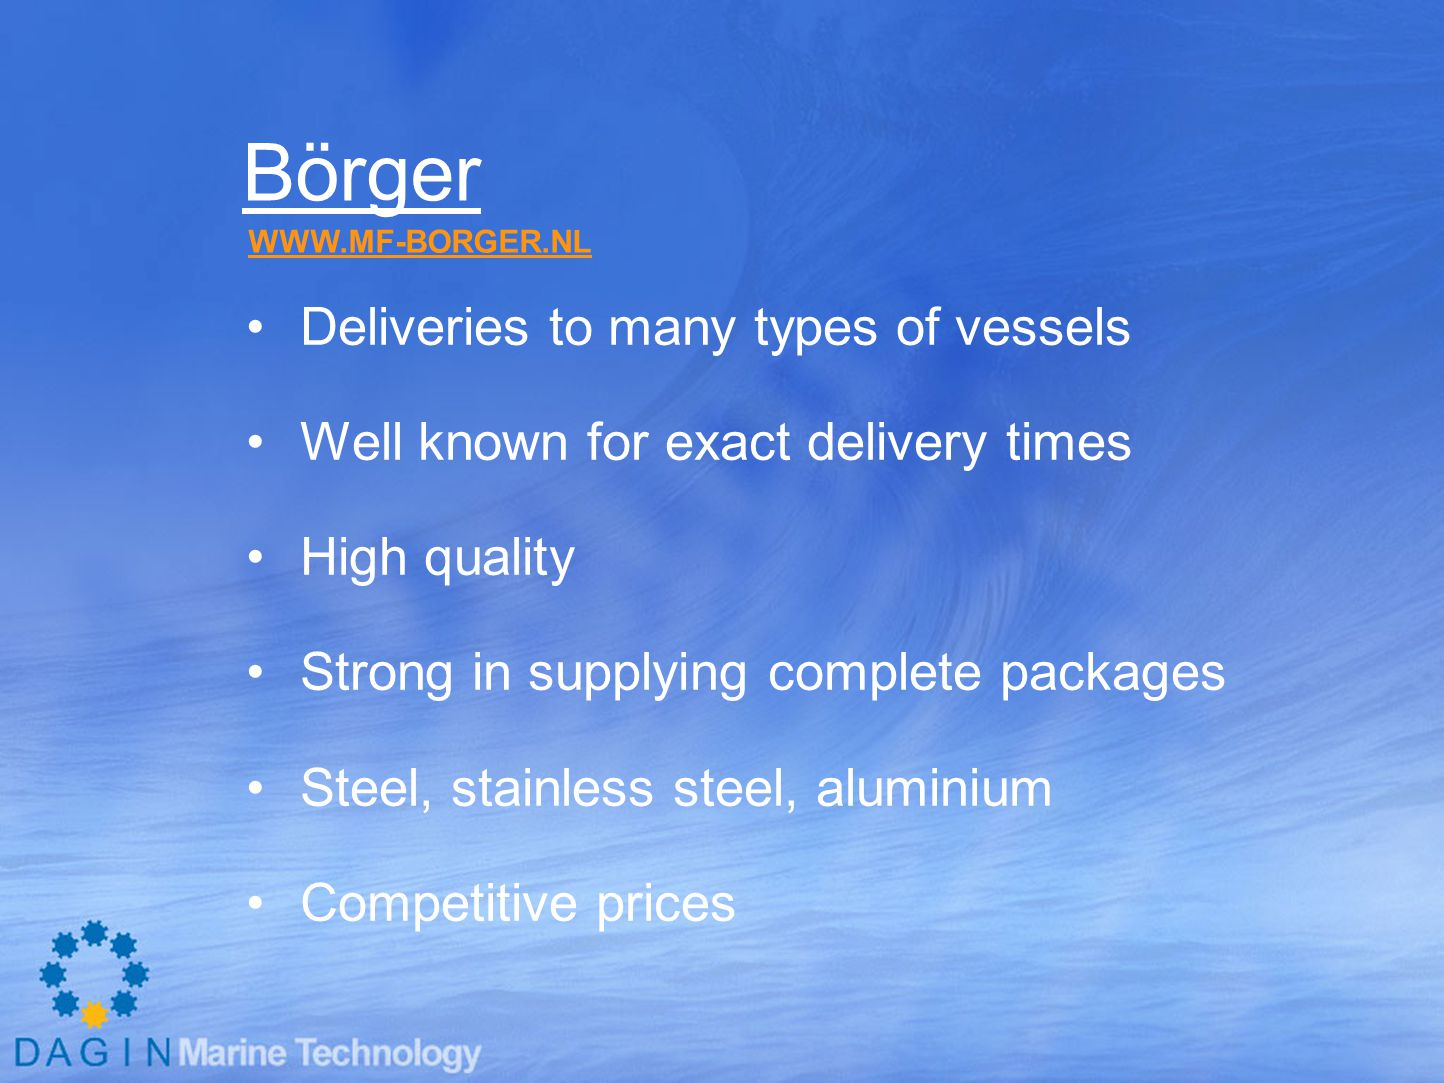 Börger Deliveries to many types of vessels Well known for exact delivery times High quality Strong in supplying complete packages Steel, stainless steel, aluminium Competitive prices WWW.MF-BORGER.NL